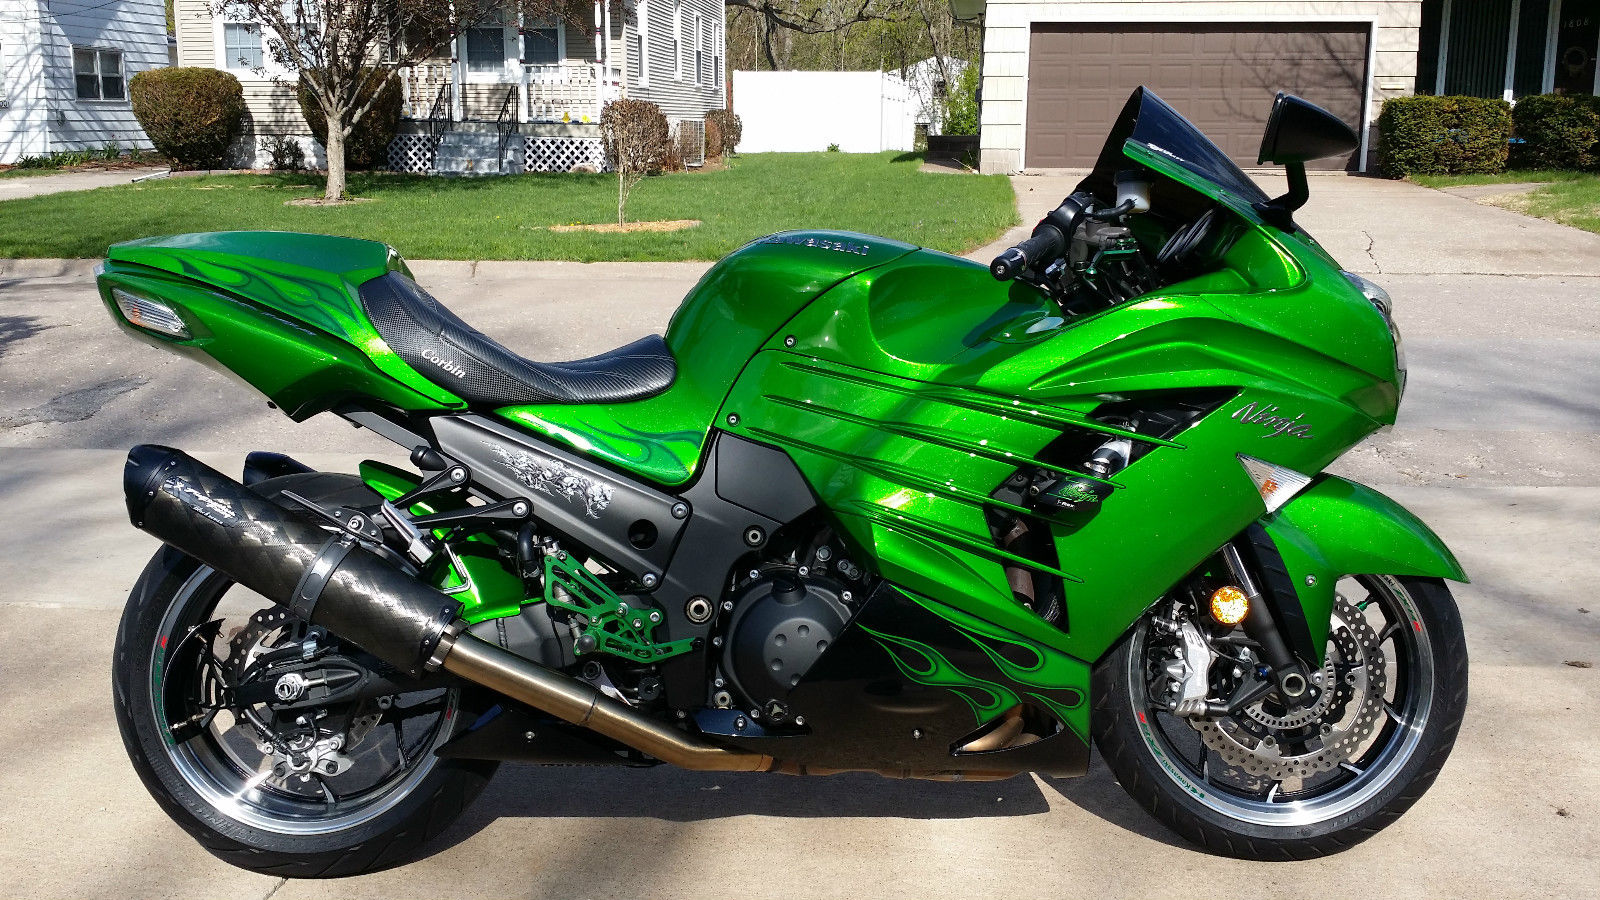 Special Edition Kawasaki Ninja Zx R Golden Blazed Green Cc furthermore Img Qjs S Lcm R likewise B E E D Da D Ead Fc further  in addition Kawasaki Ninja Zx R Zx Zx Full Custom Show Bike Single Side Fat Tire. on custom kawasaki ninja zx 14 seat